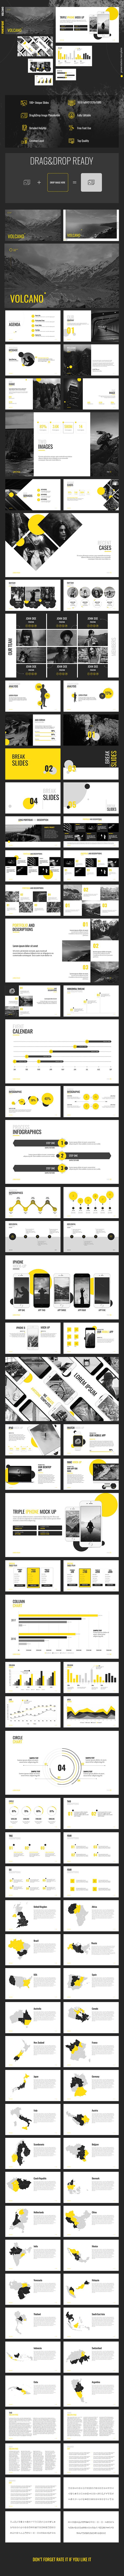 Volcano - Yellow Marketing Powerpoint Template | Volcanoes ...